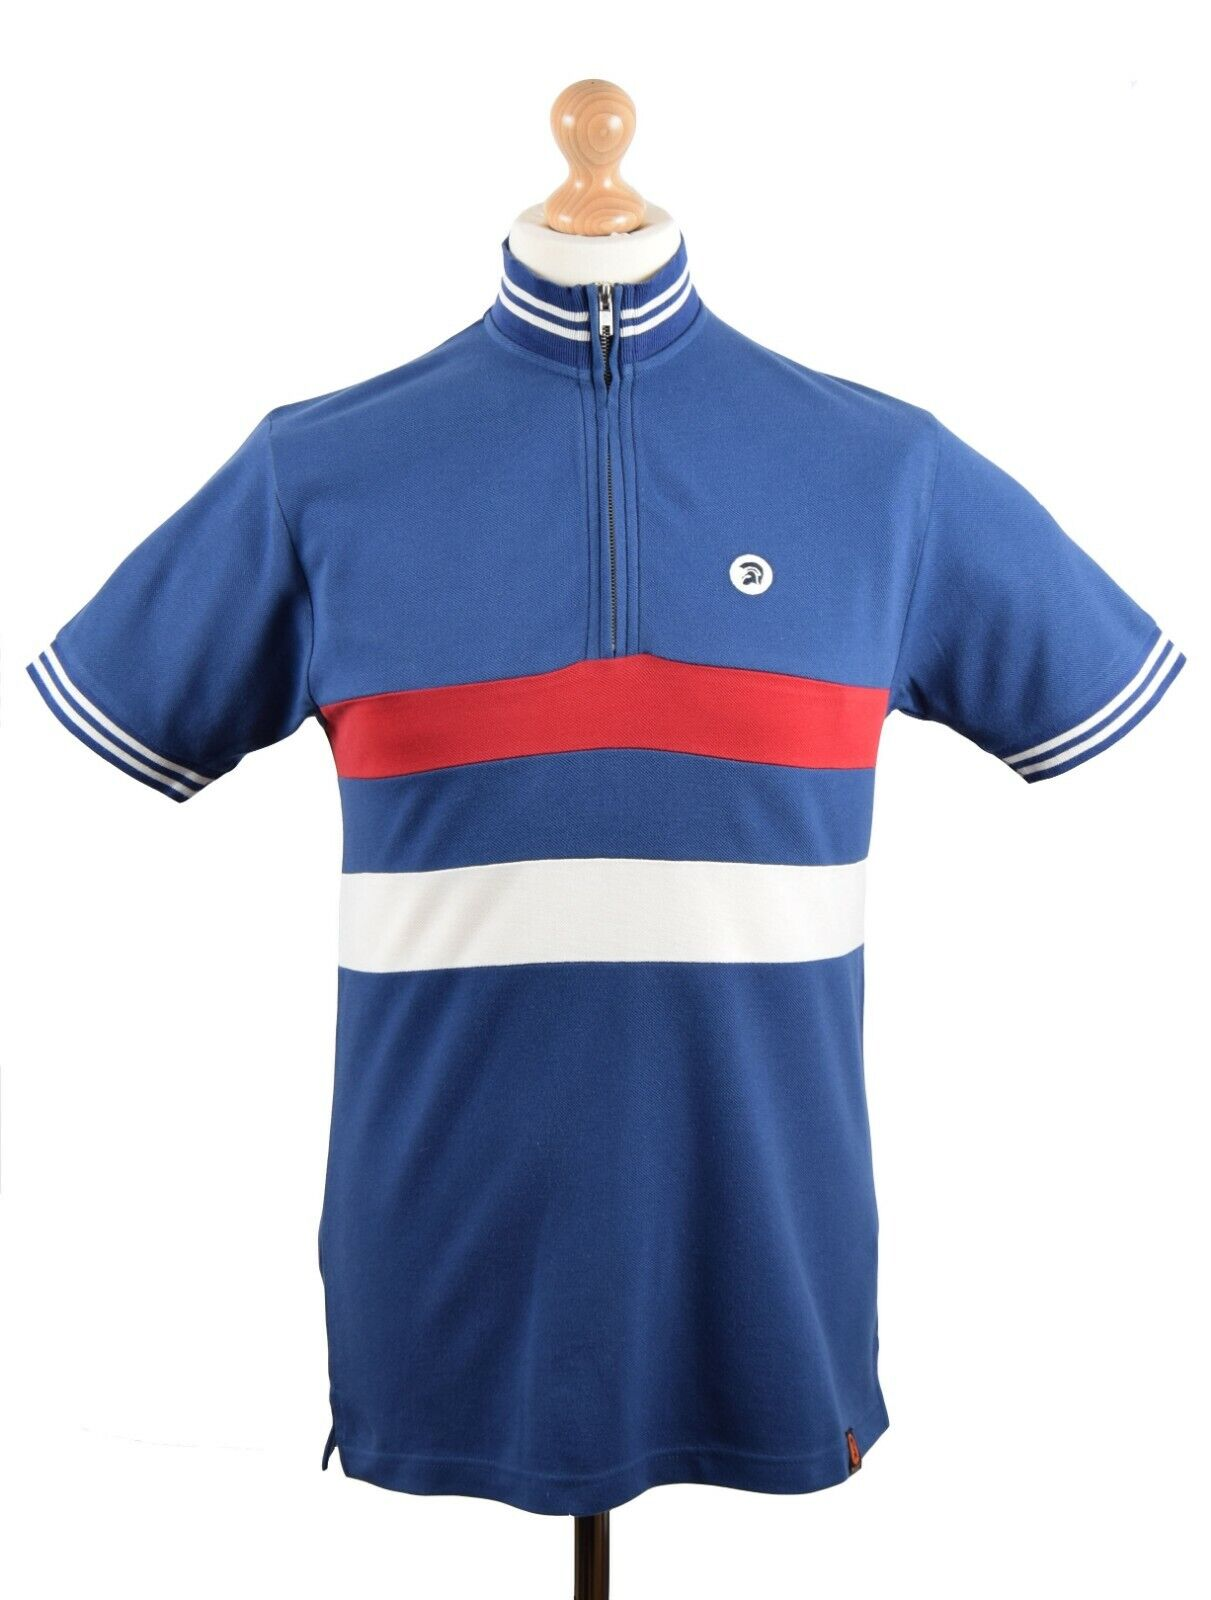 TROJAN RECORDS ELECTRIC NAVY CYCLE TOP MOD CLOTHING NORTHERN SOUL MODS SCOOTER